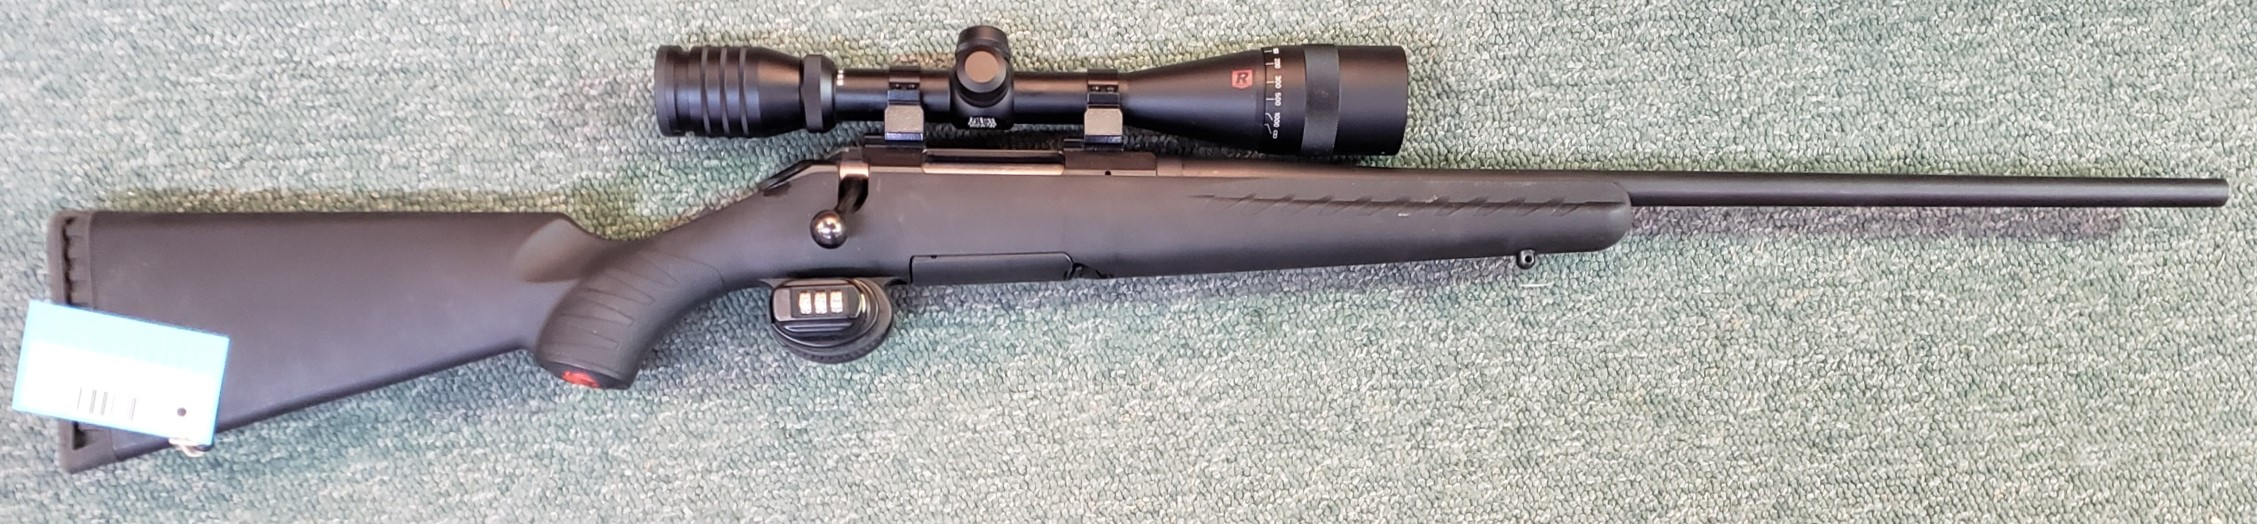 Ruger American 22-250 W/scope (used)